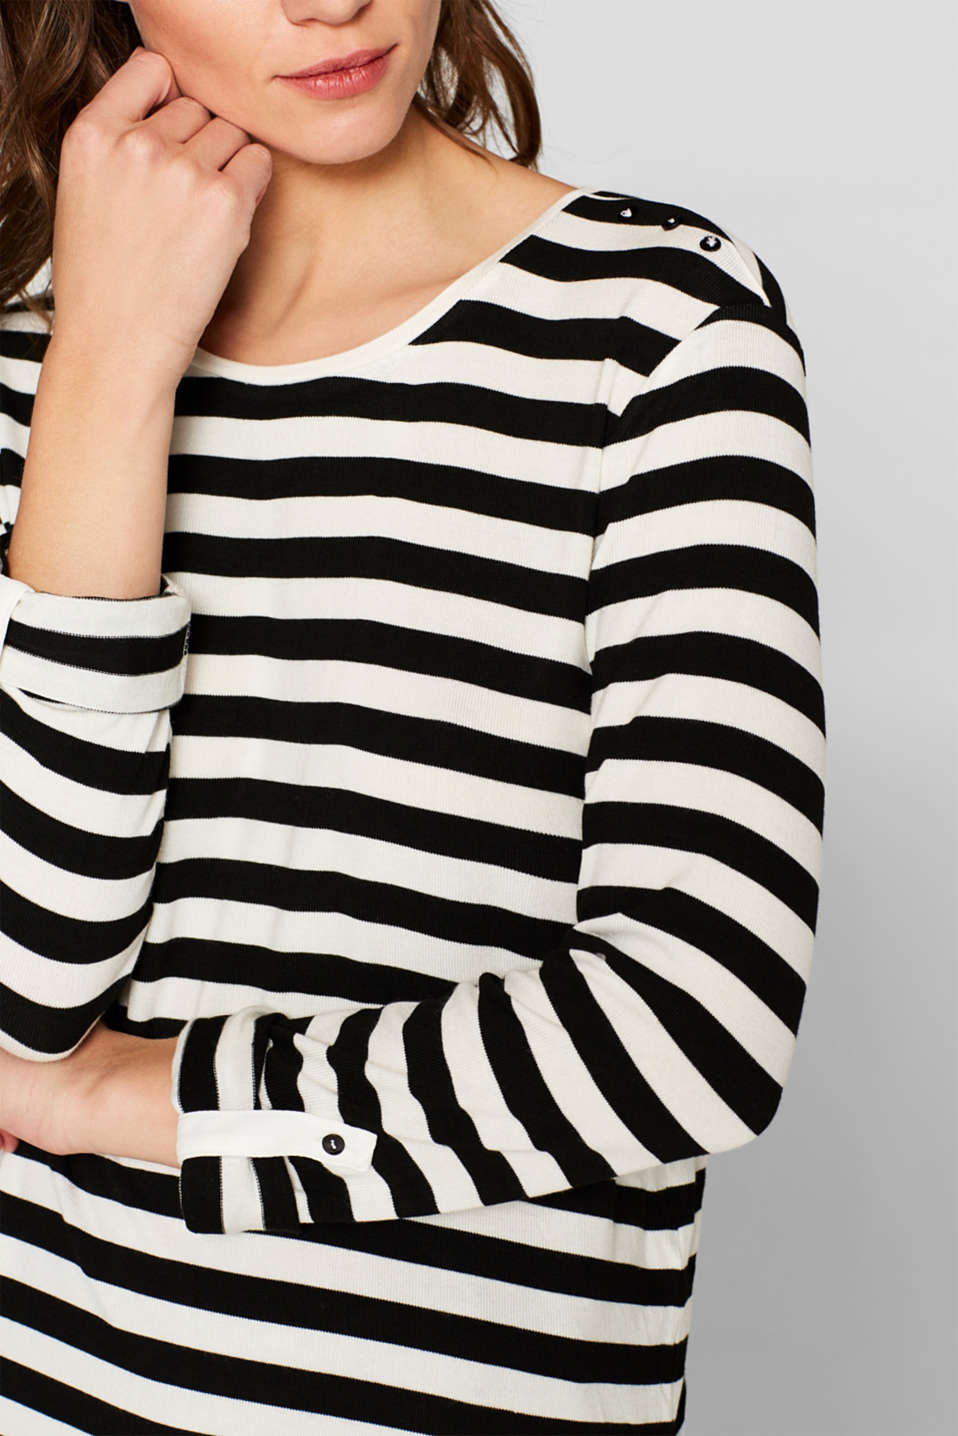 Striped stretch top in a layered look, BLACK, detail image number 2